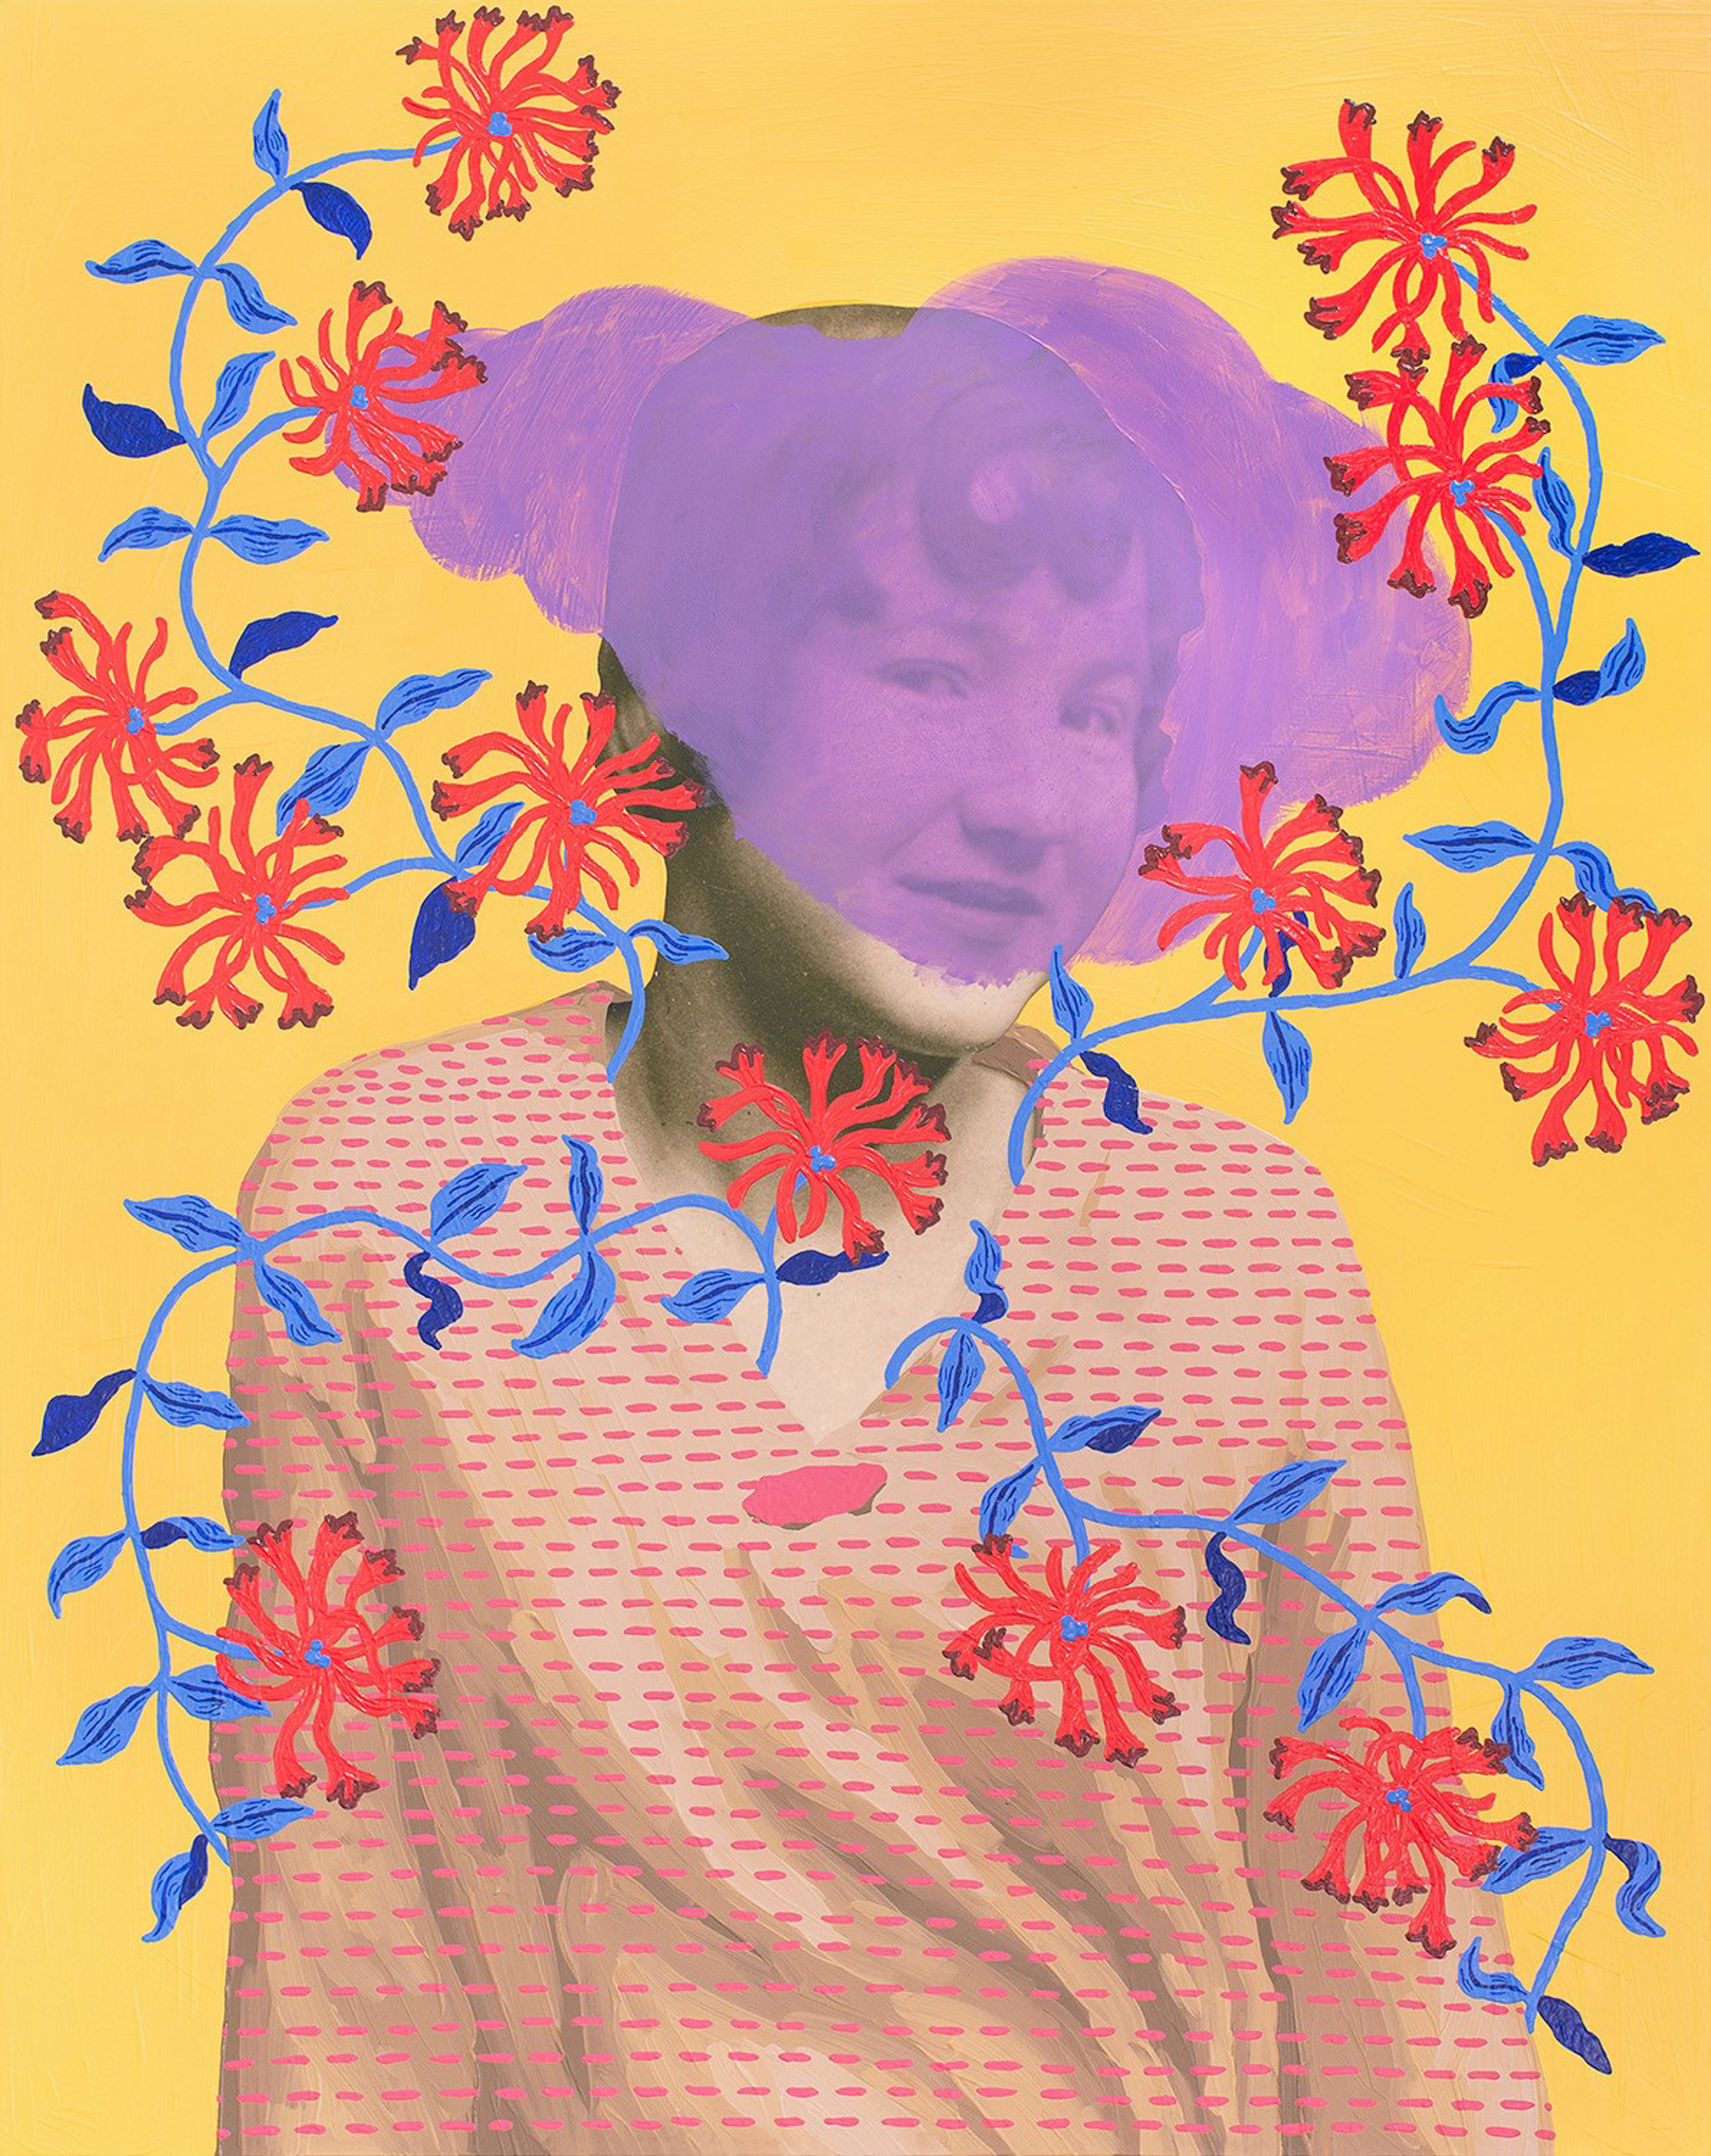 Untitled (Woman with Blue Vine and Puffed Flowers) by Daisy Patton